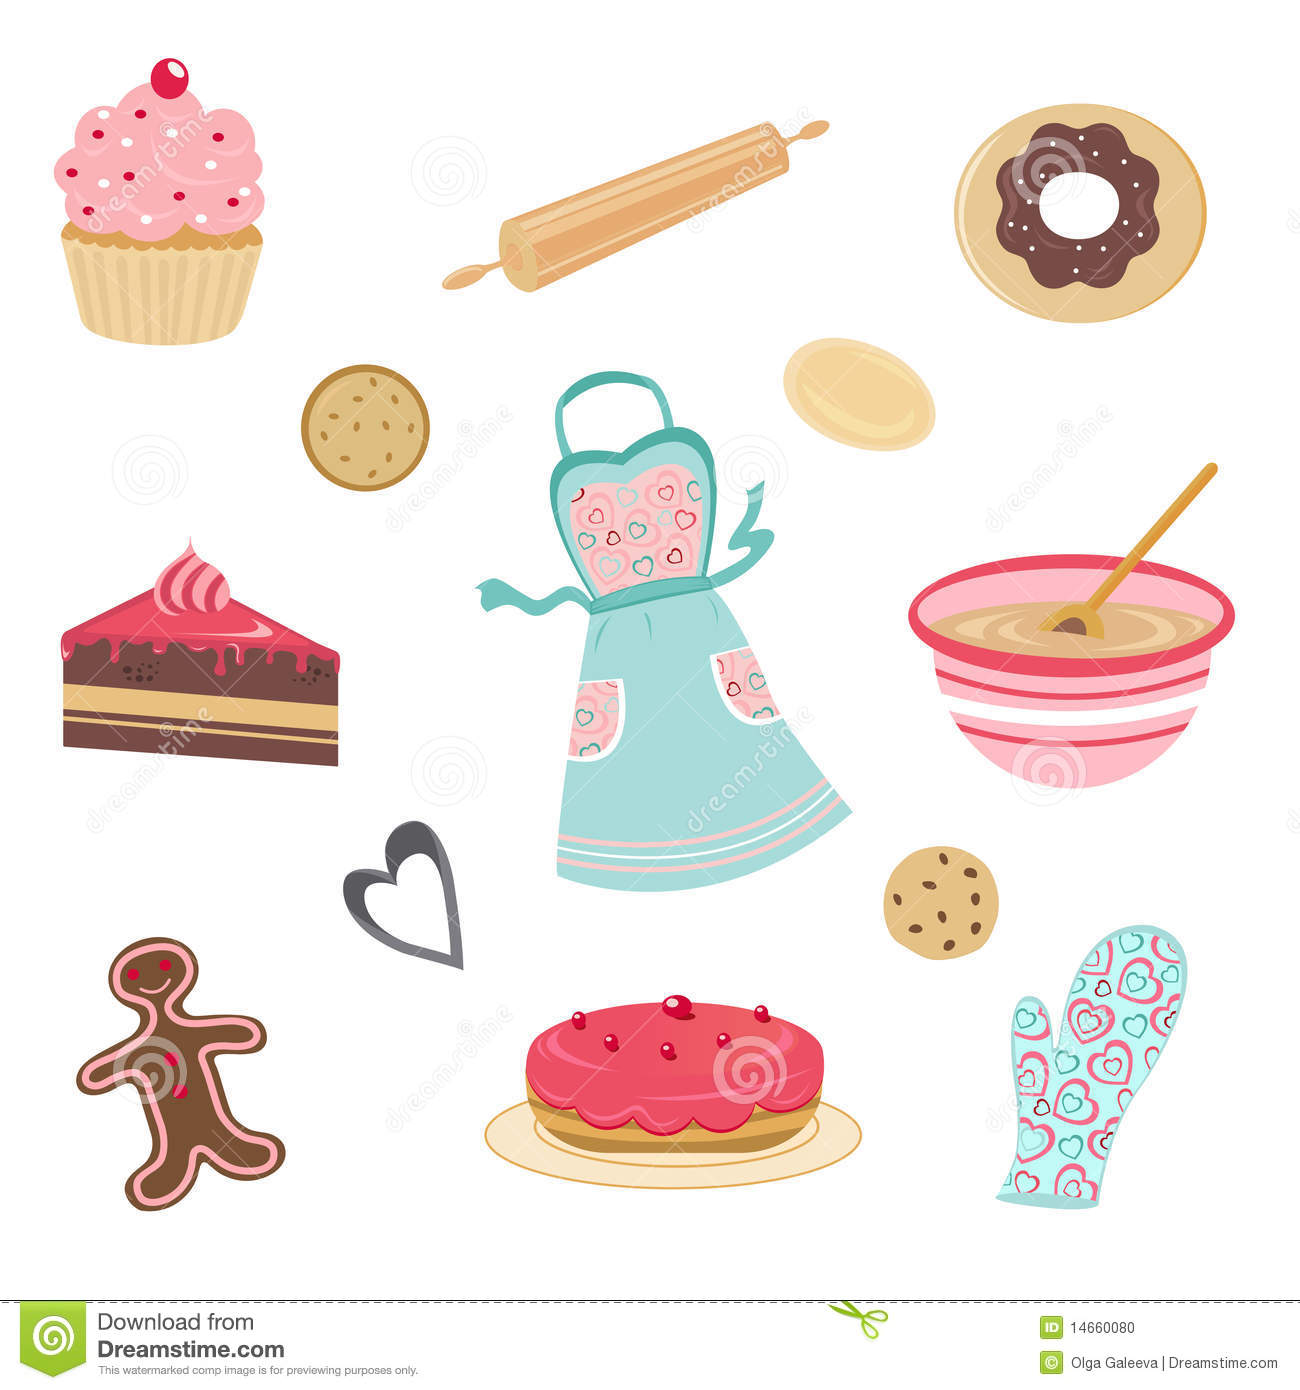 Cute Animated Cupcake Wallpaper Baked Goods Clipart 20 Free Cliparts Download Images On